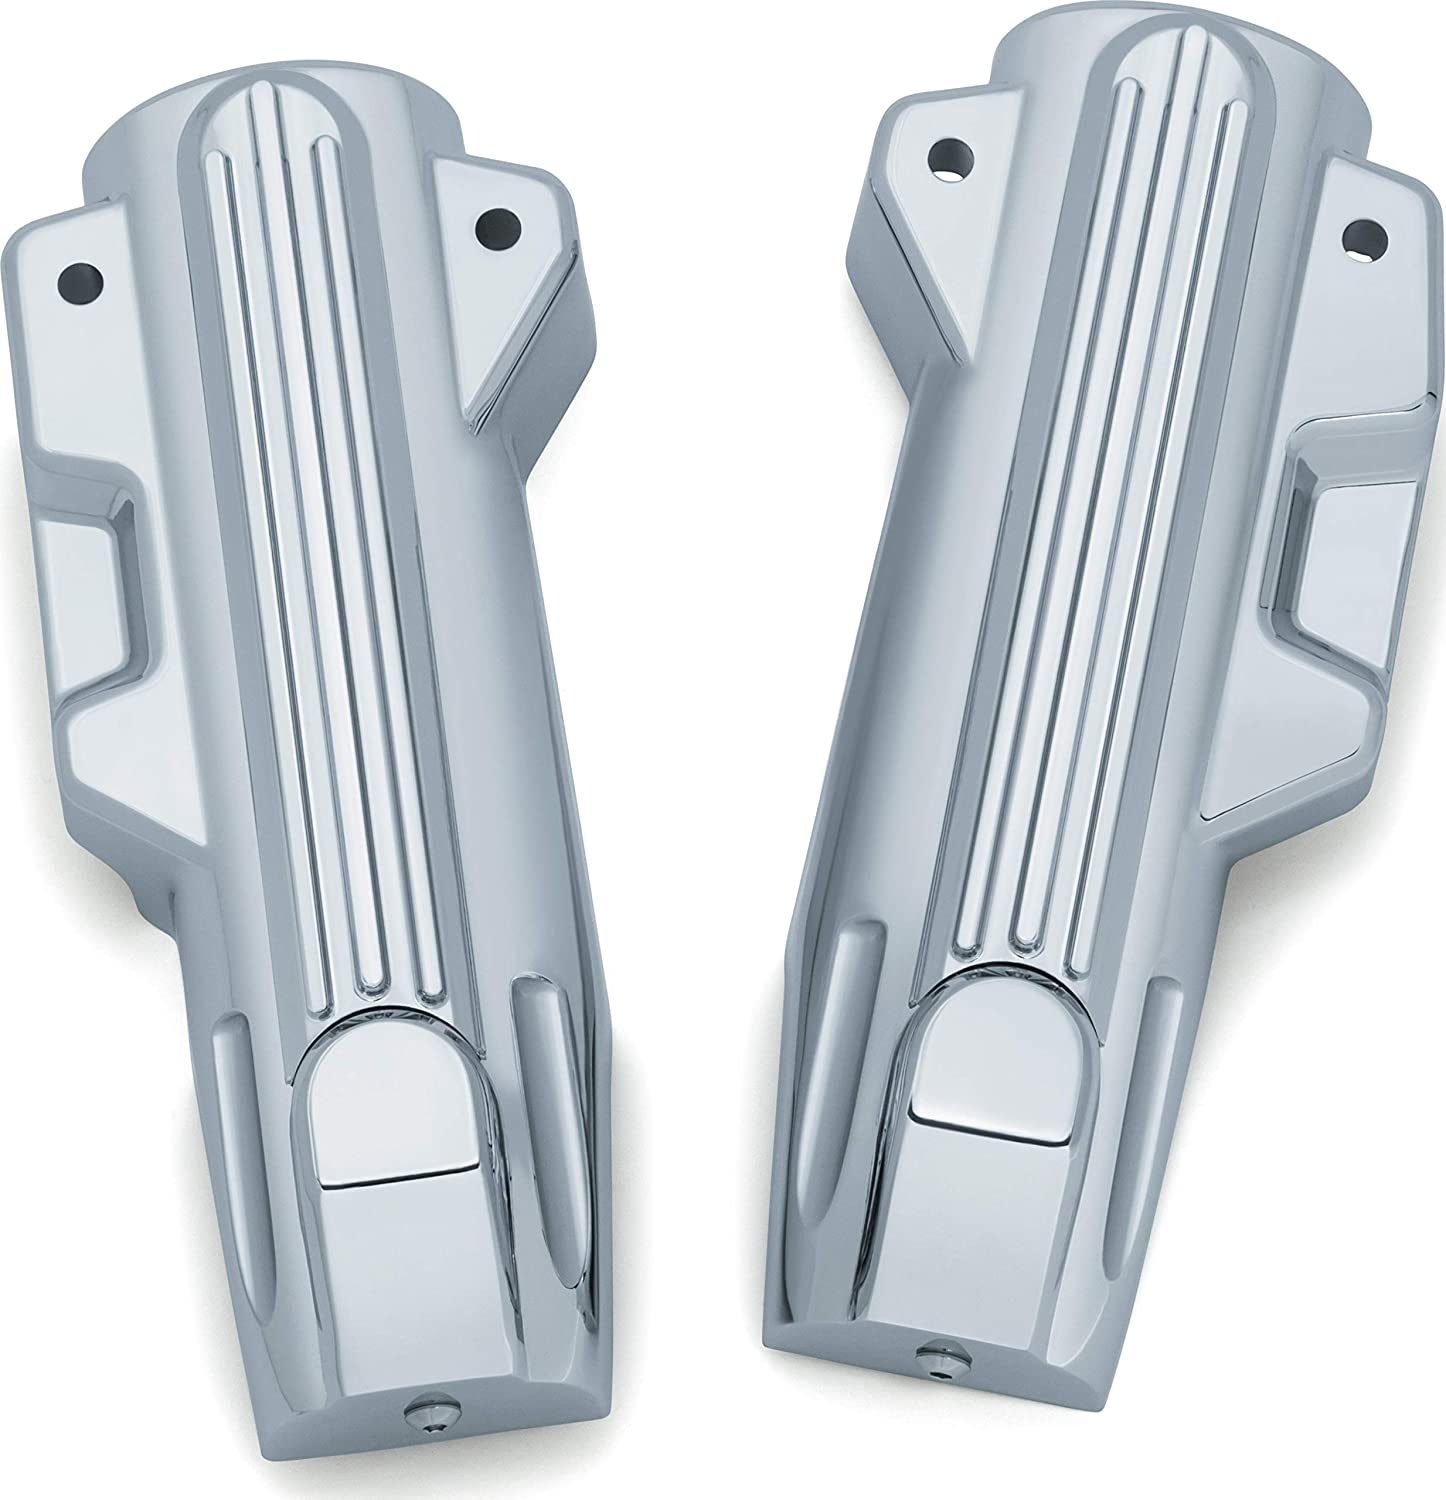 Kuryakyn 7142 Motorcycle Accent Accessory 1 Pair Upper Fork Slider Accents for 2014-19 Harley-Davidson Motorcycles Chrome